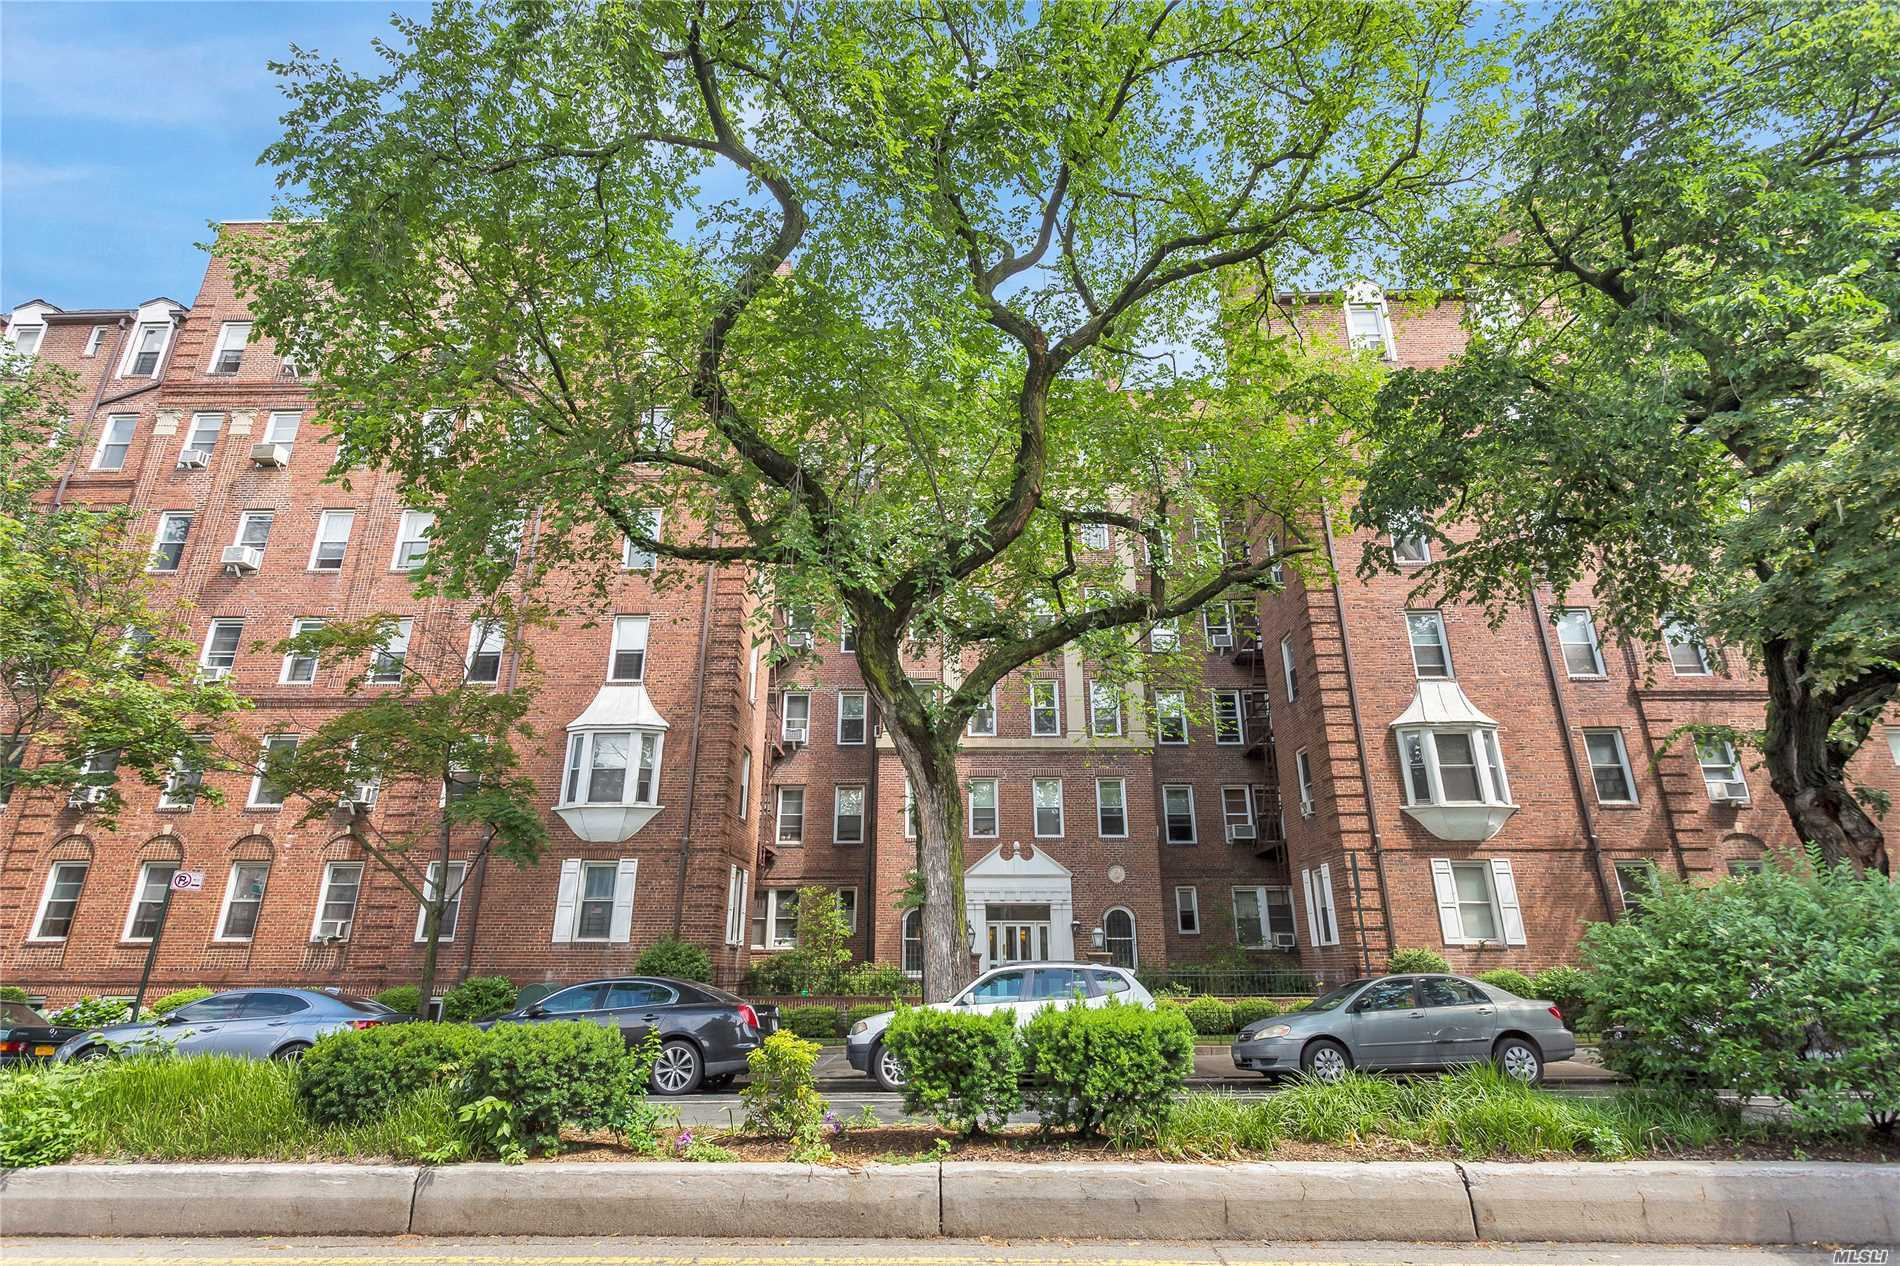 72-17 34th Avenue, 2G/H - Jackson Heights, New York